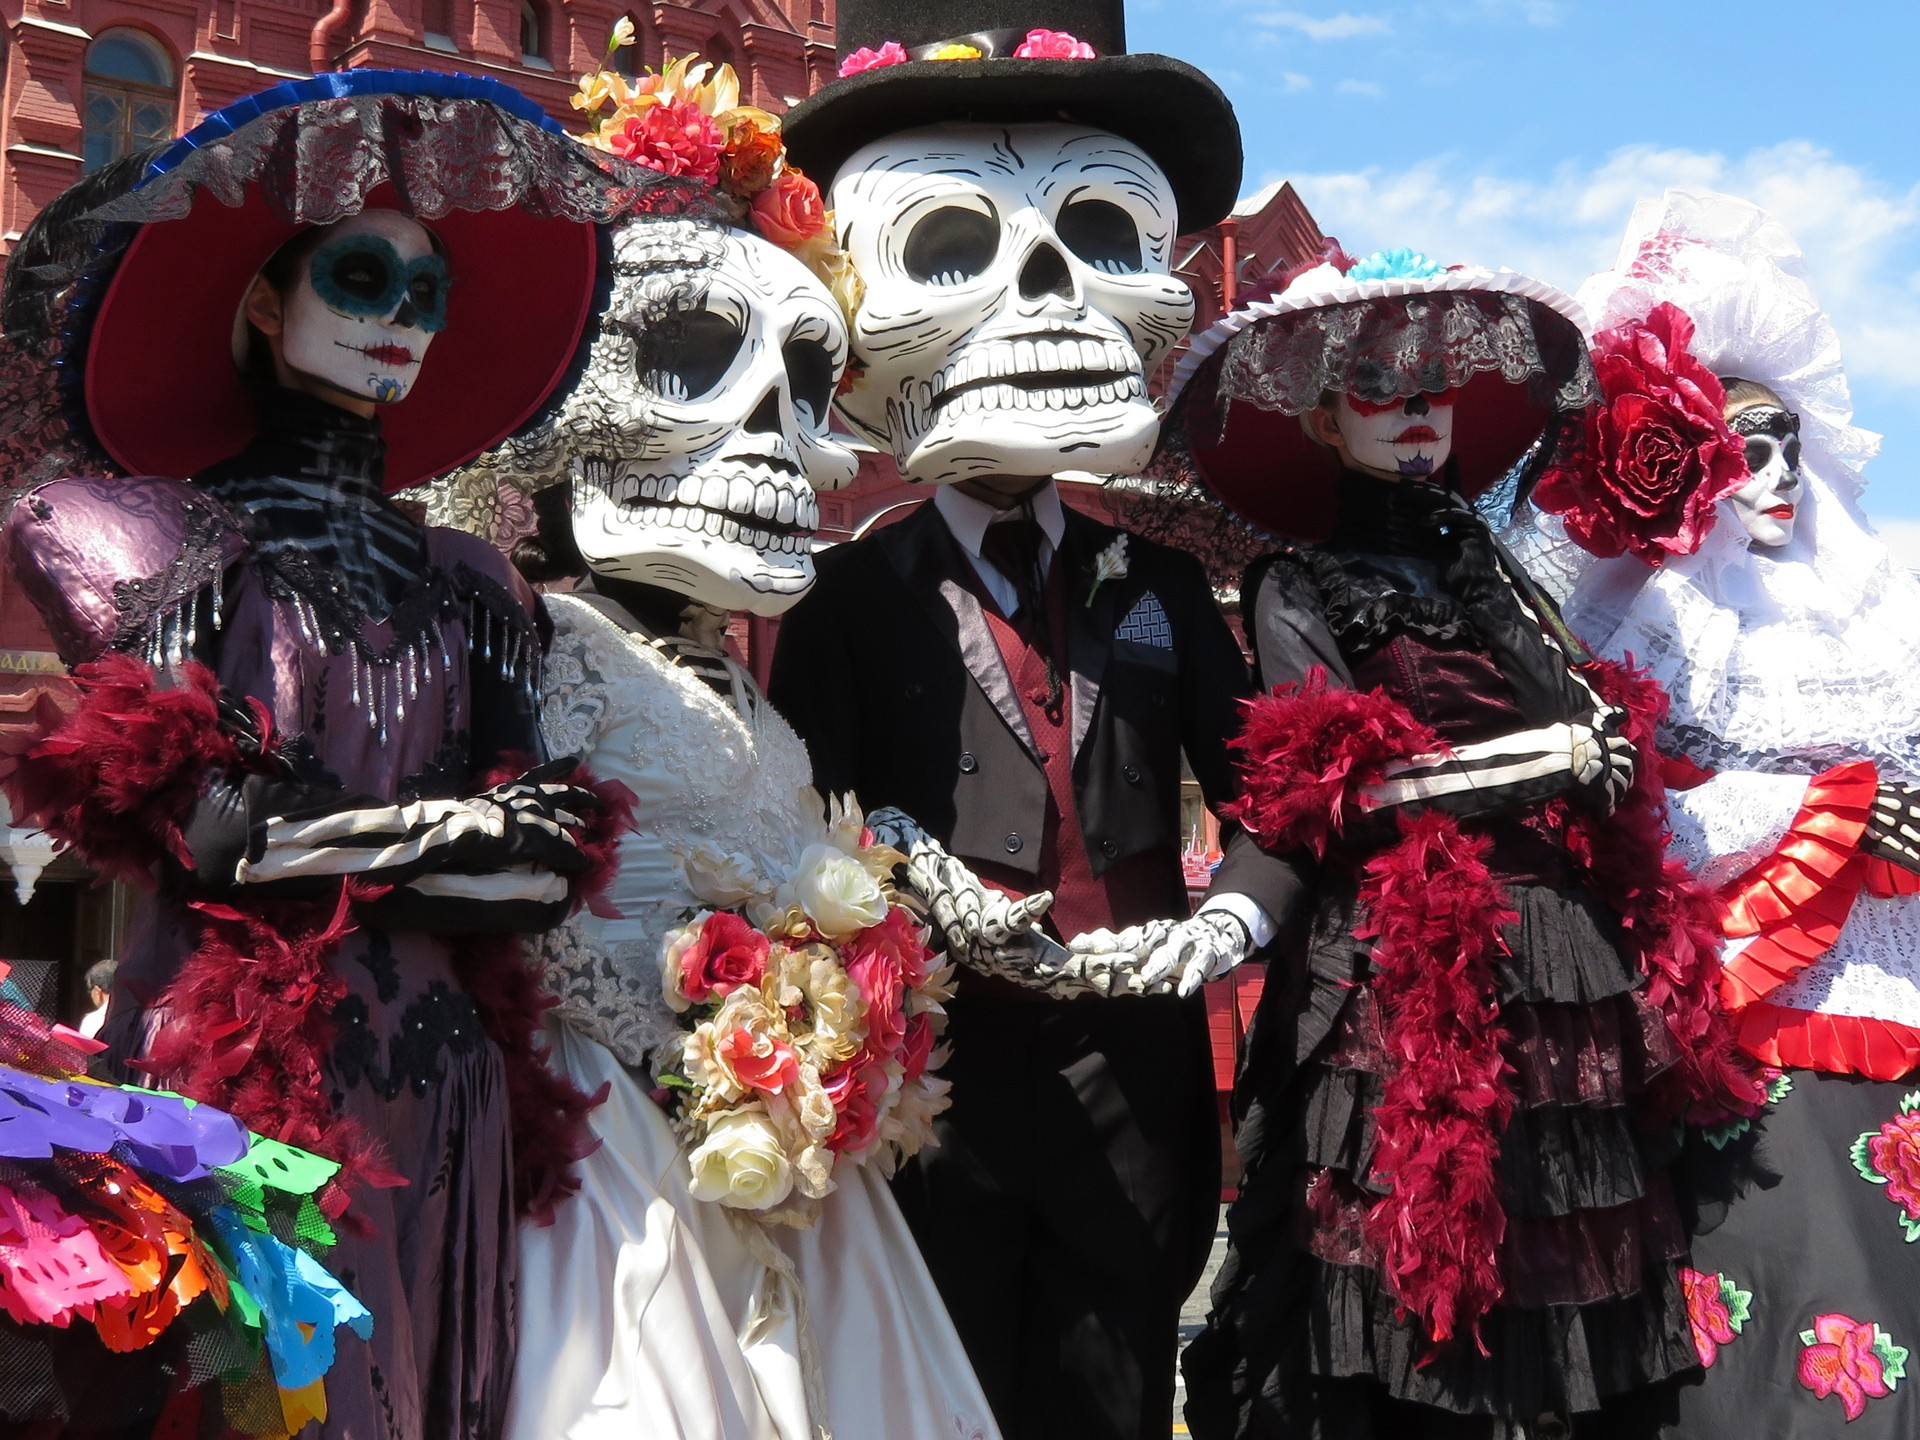 How to experience Mexico's famous Day of the Dead: Mexico City